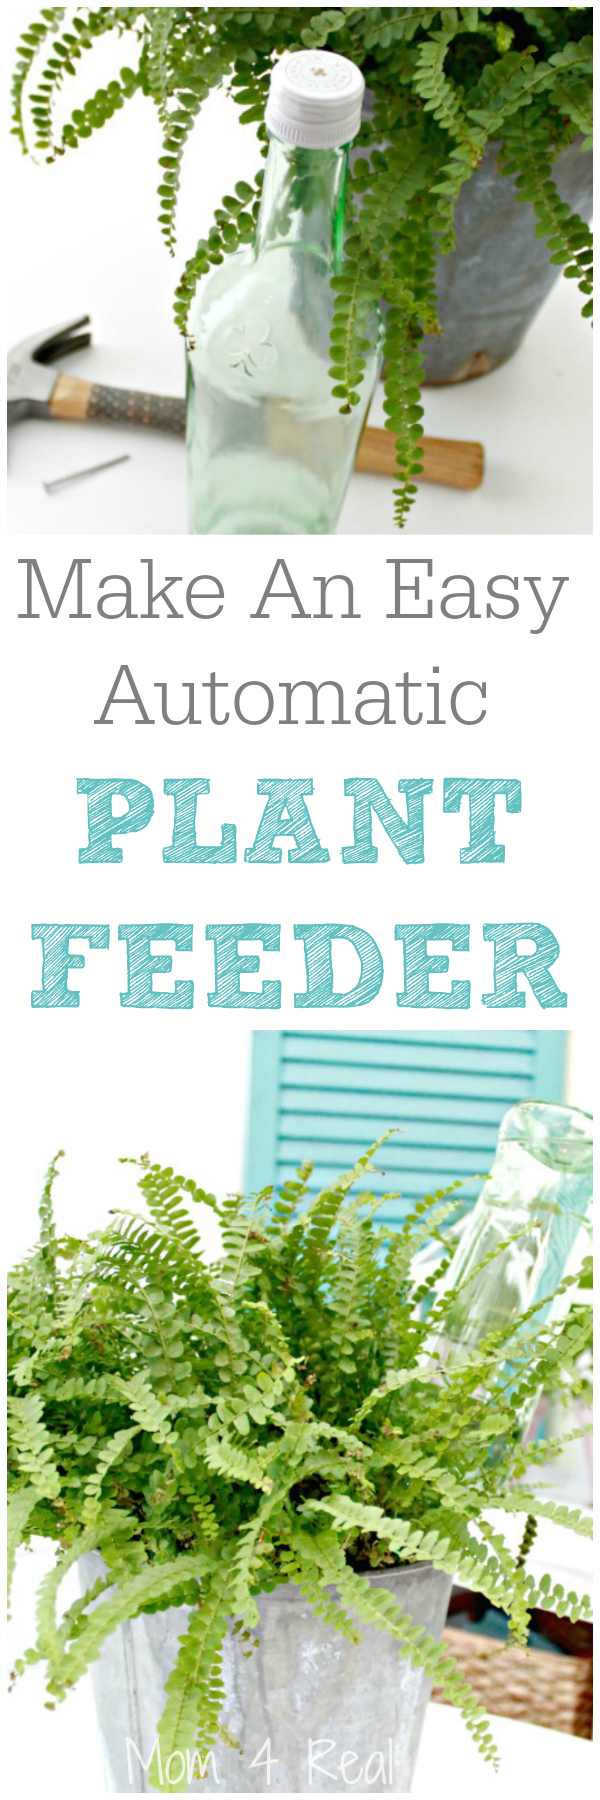 Make an easy automatic plant feeder in minutes!